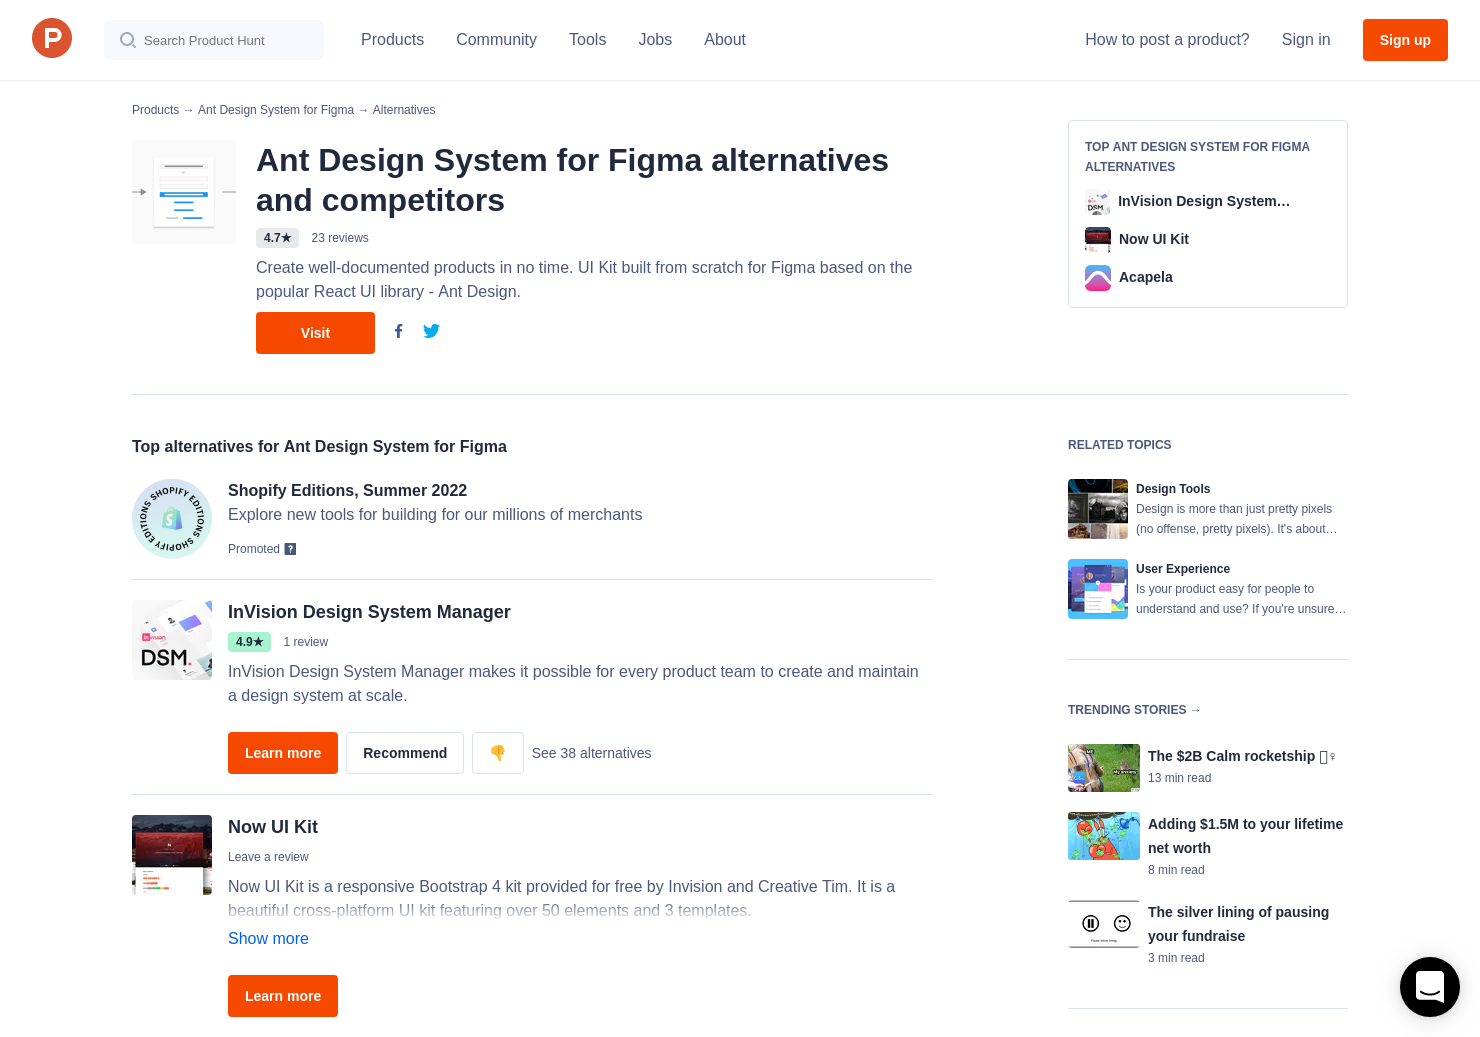 7 Alternatives to Ant Design System for Figma | Product Hunt